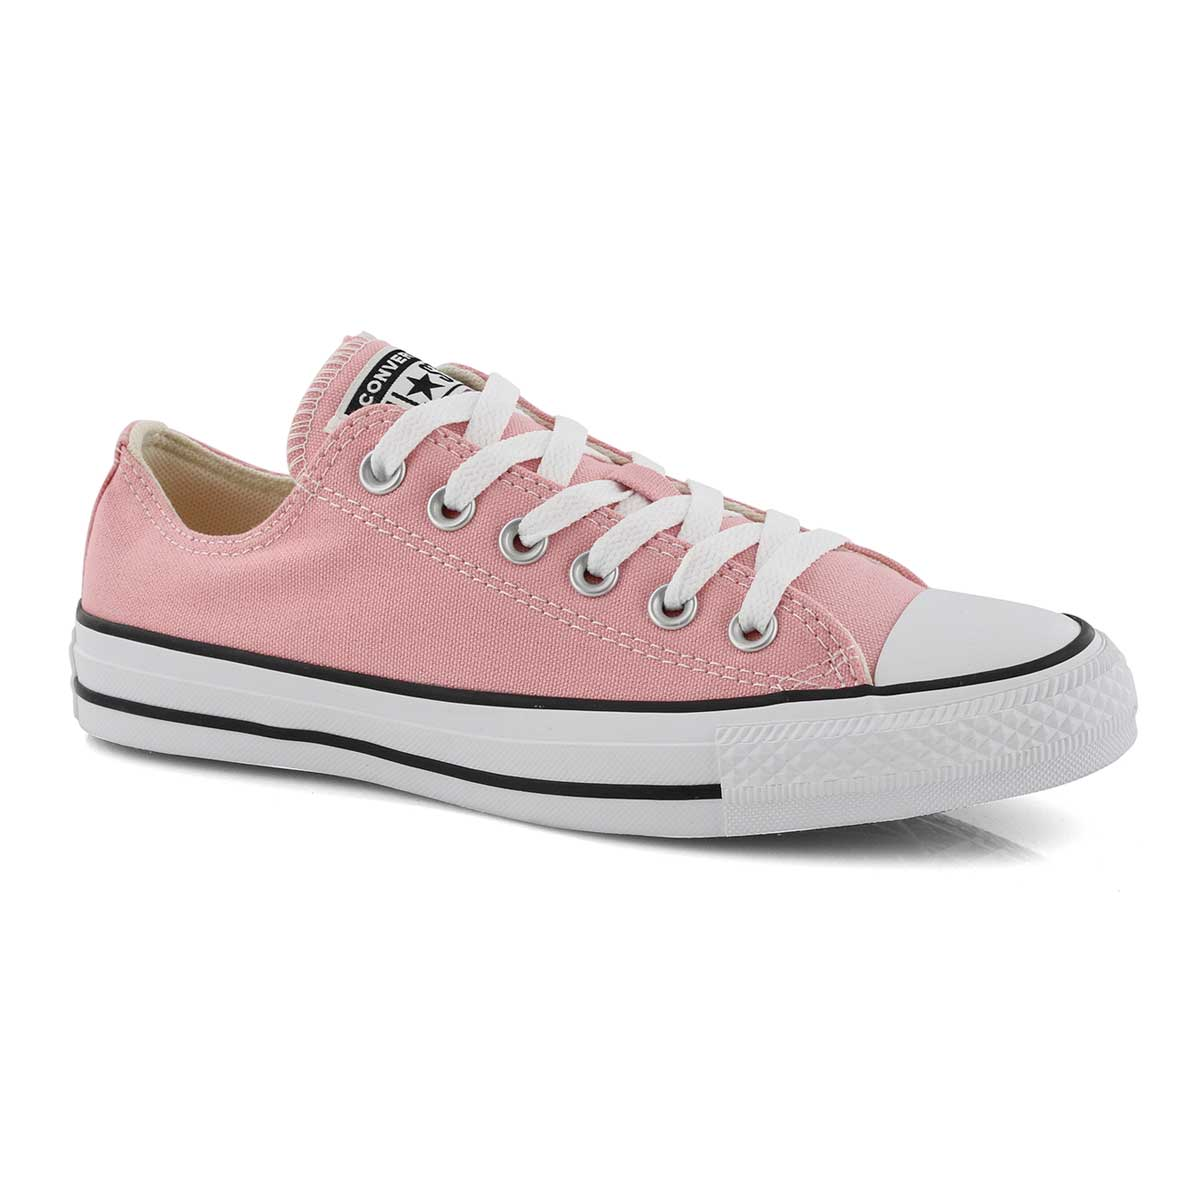 Women's CT ALL STAR SEASONAL OX pink sneaker